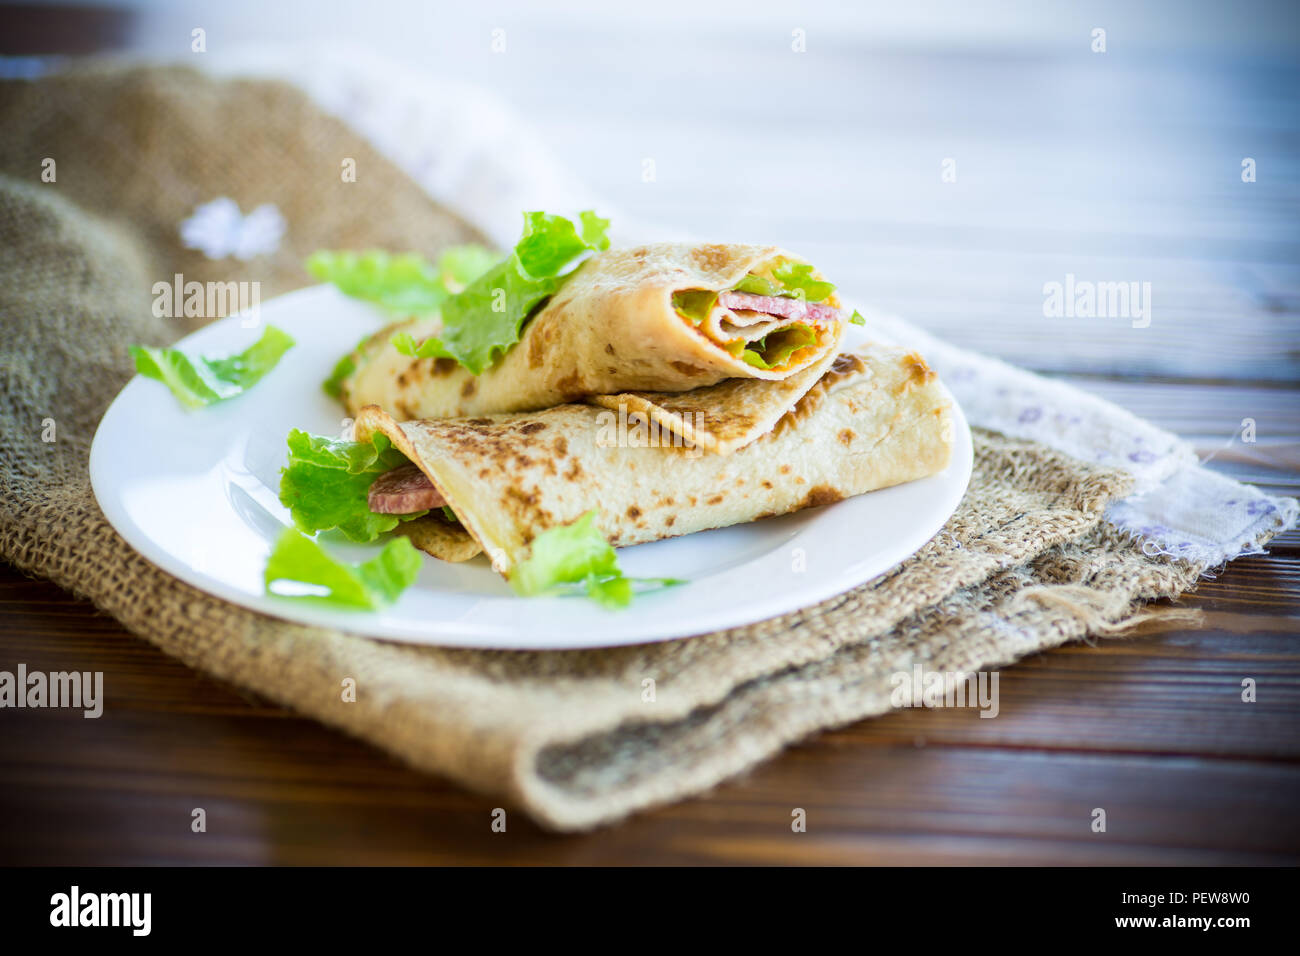 thin pancakes with salad leaves and bacon in a plate on a wooden table - Stock Image